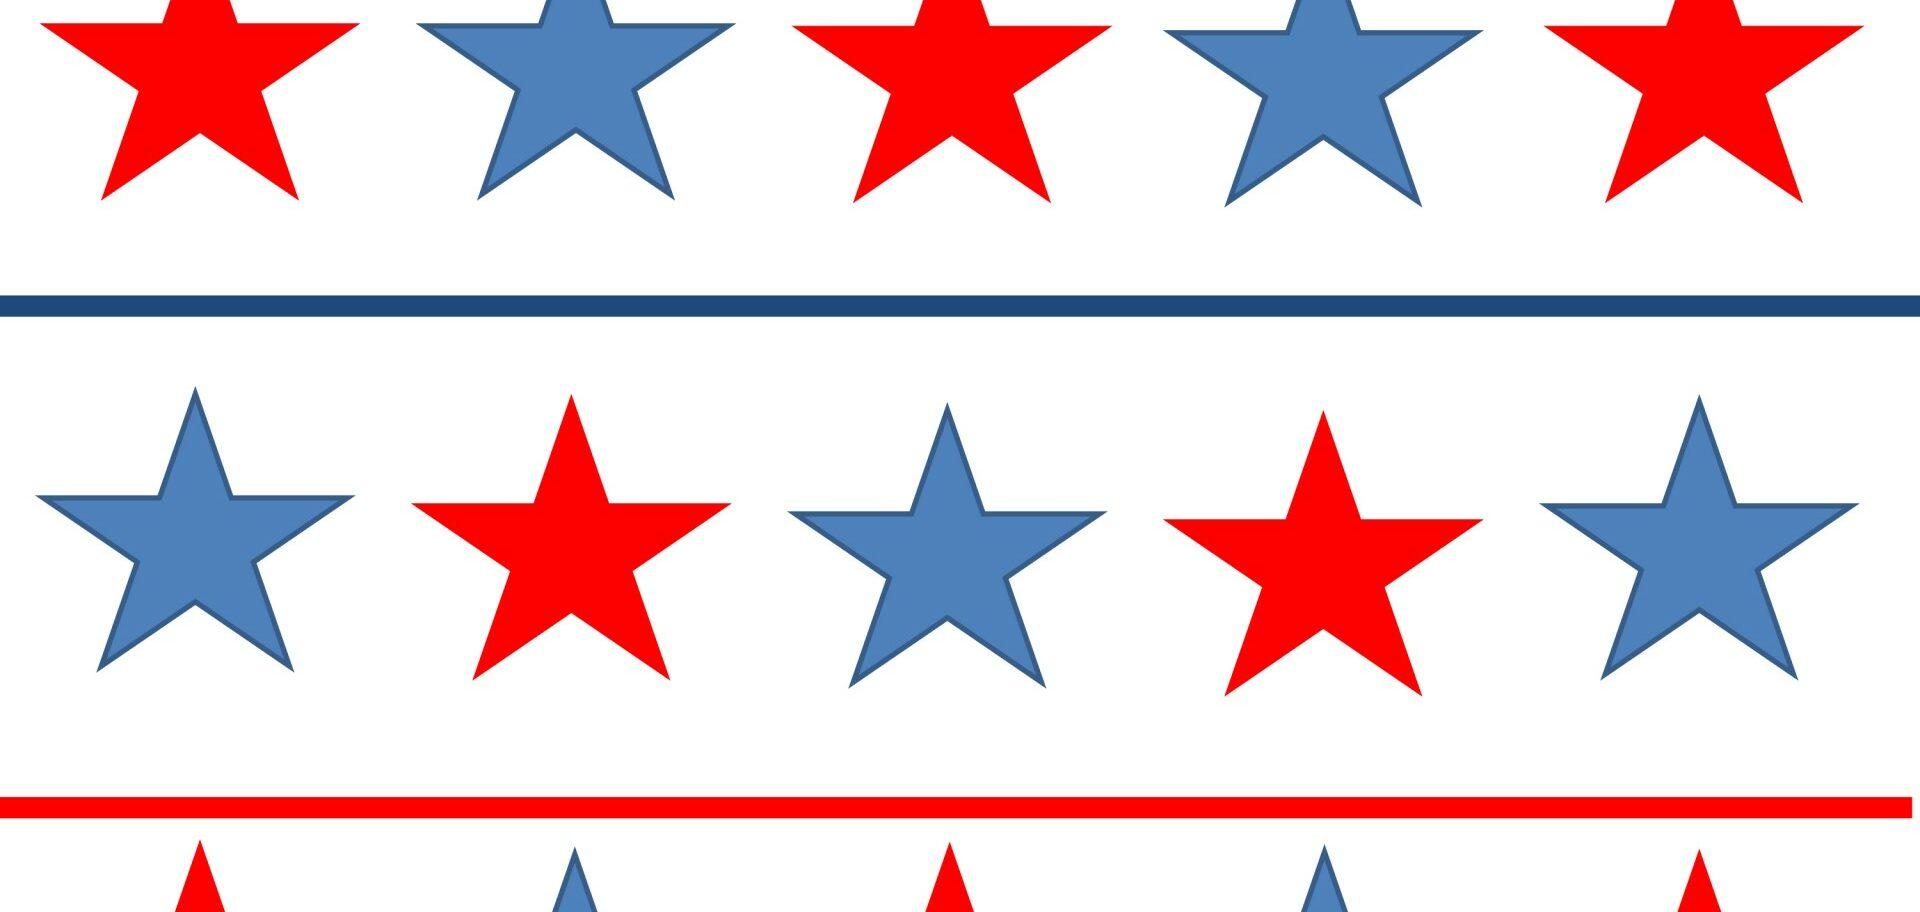 stars-and-stripes